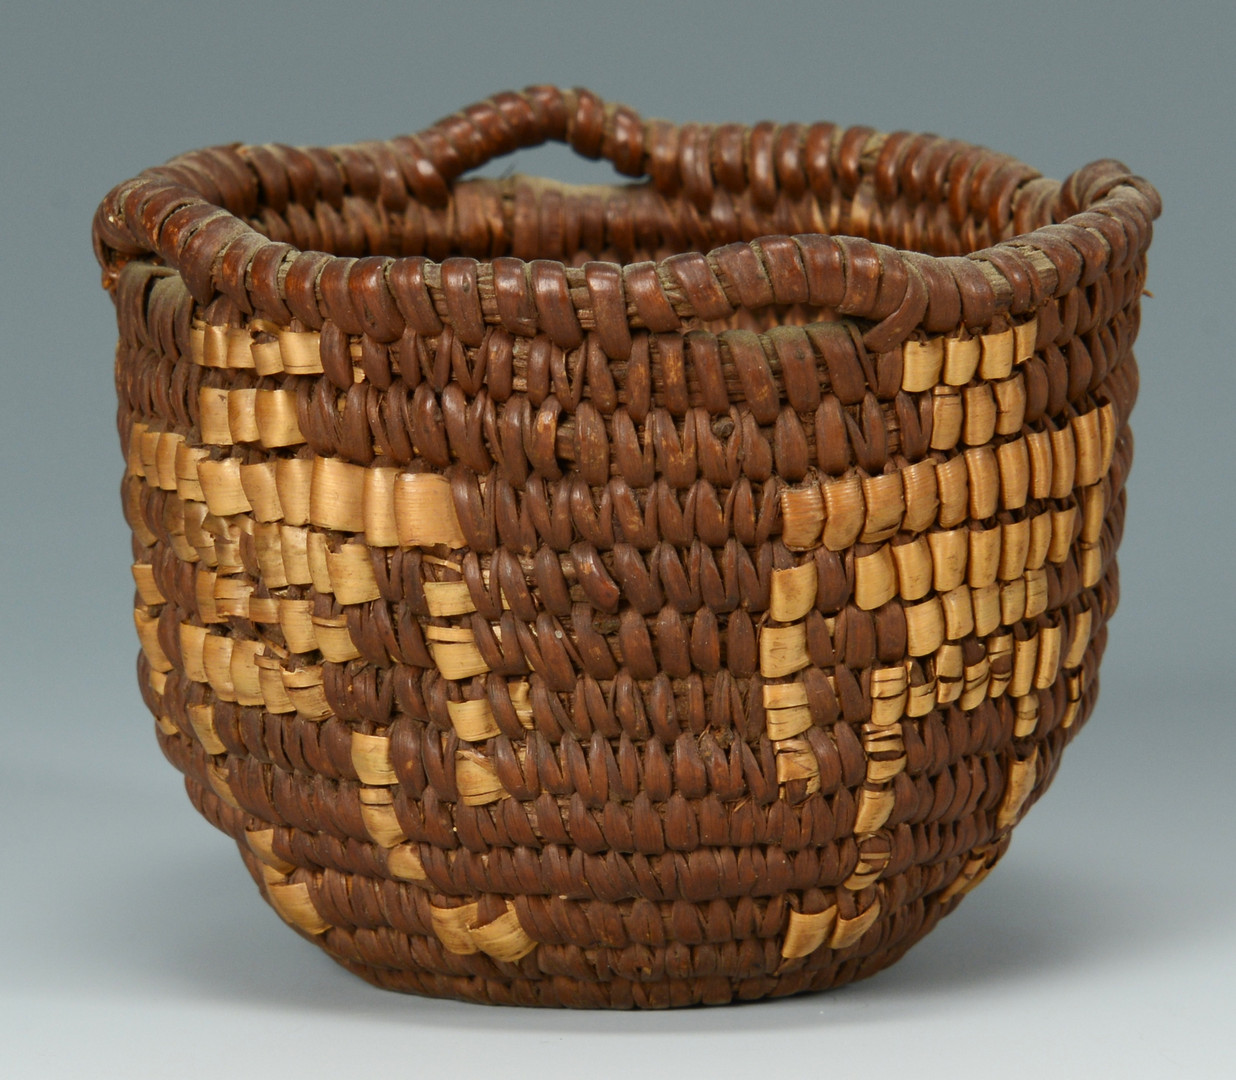 Lot 334 2 Southwest Indian Figural Baskets